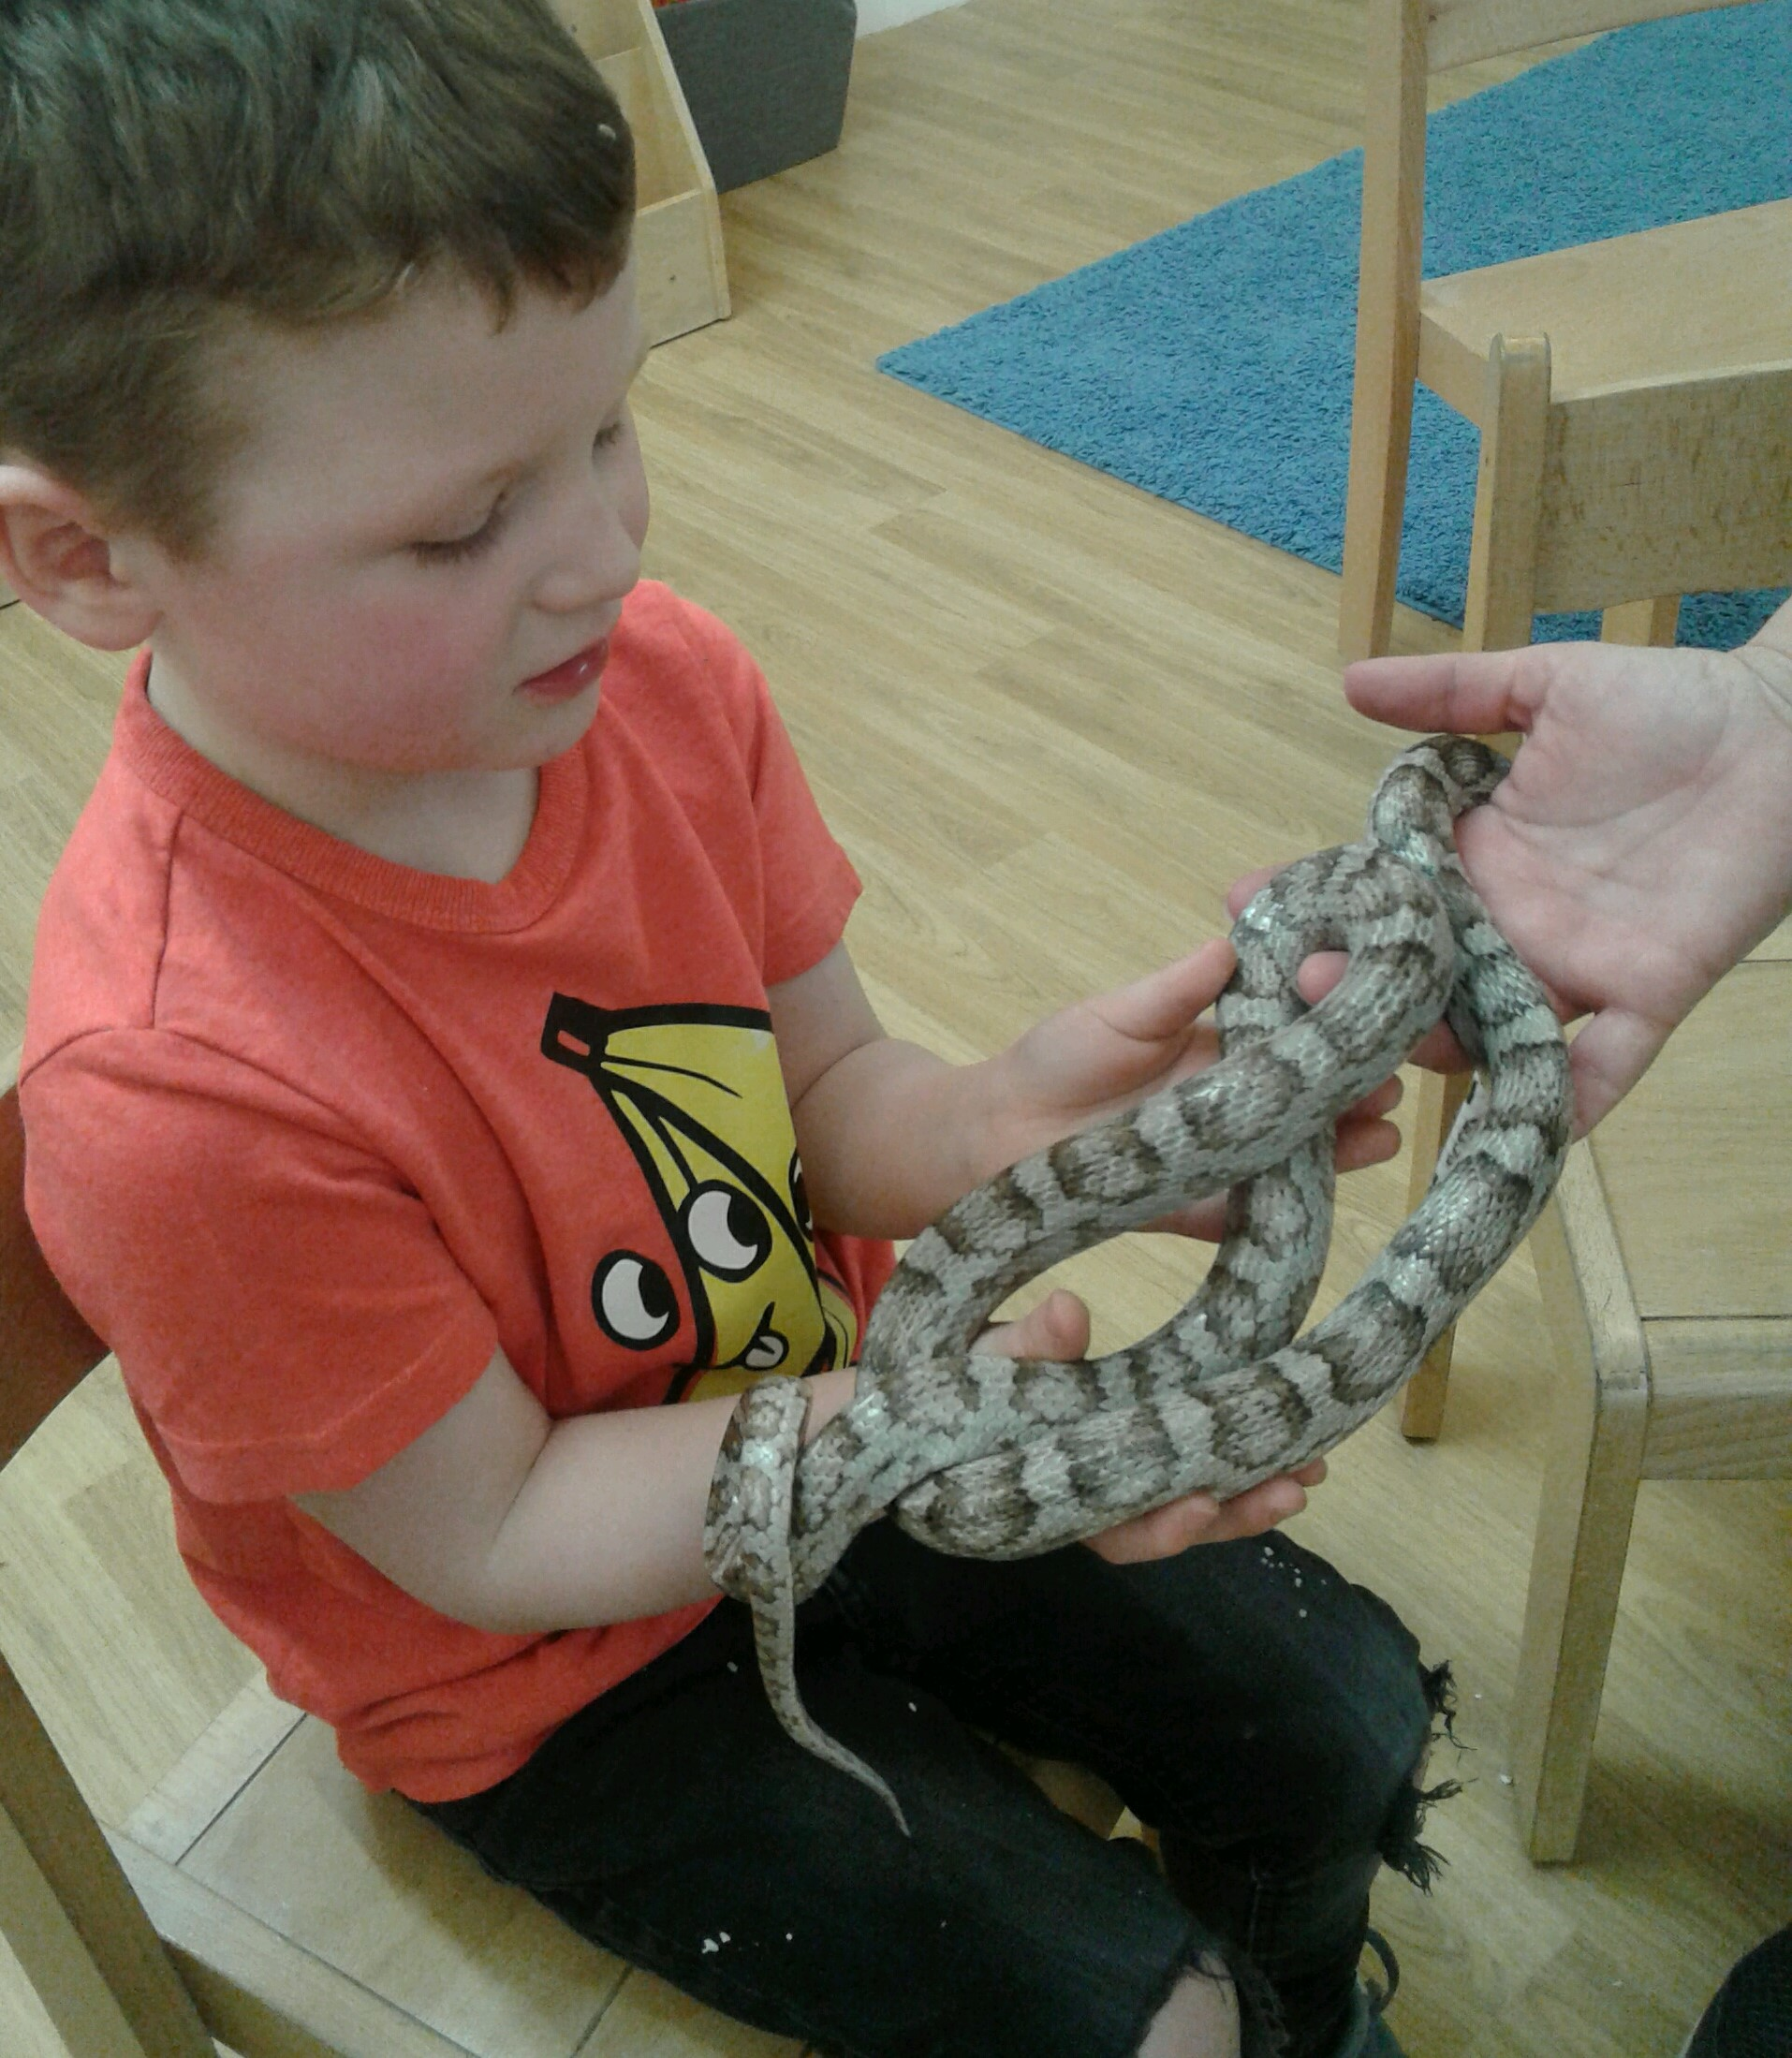 The children were really excited to meet Sarah from Animaltastics and all the amazing animals she had brought with her.